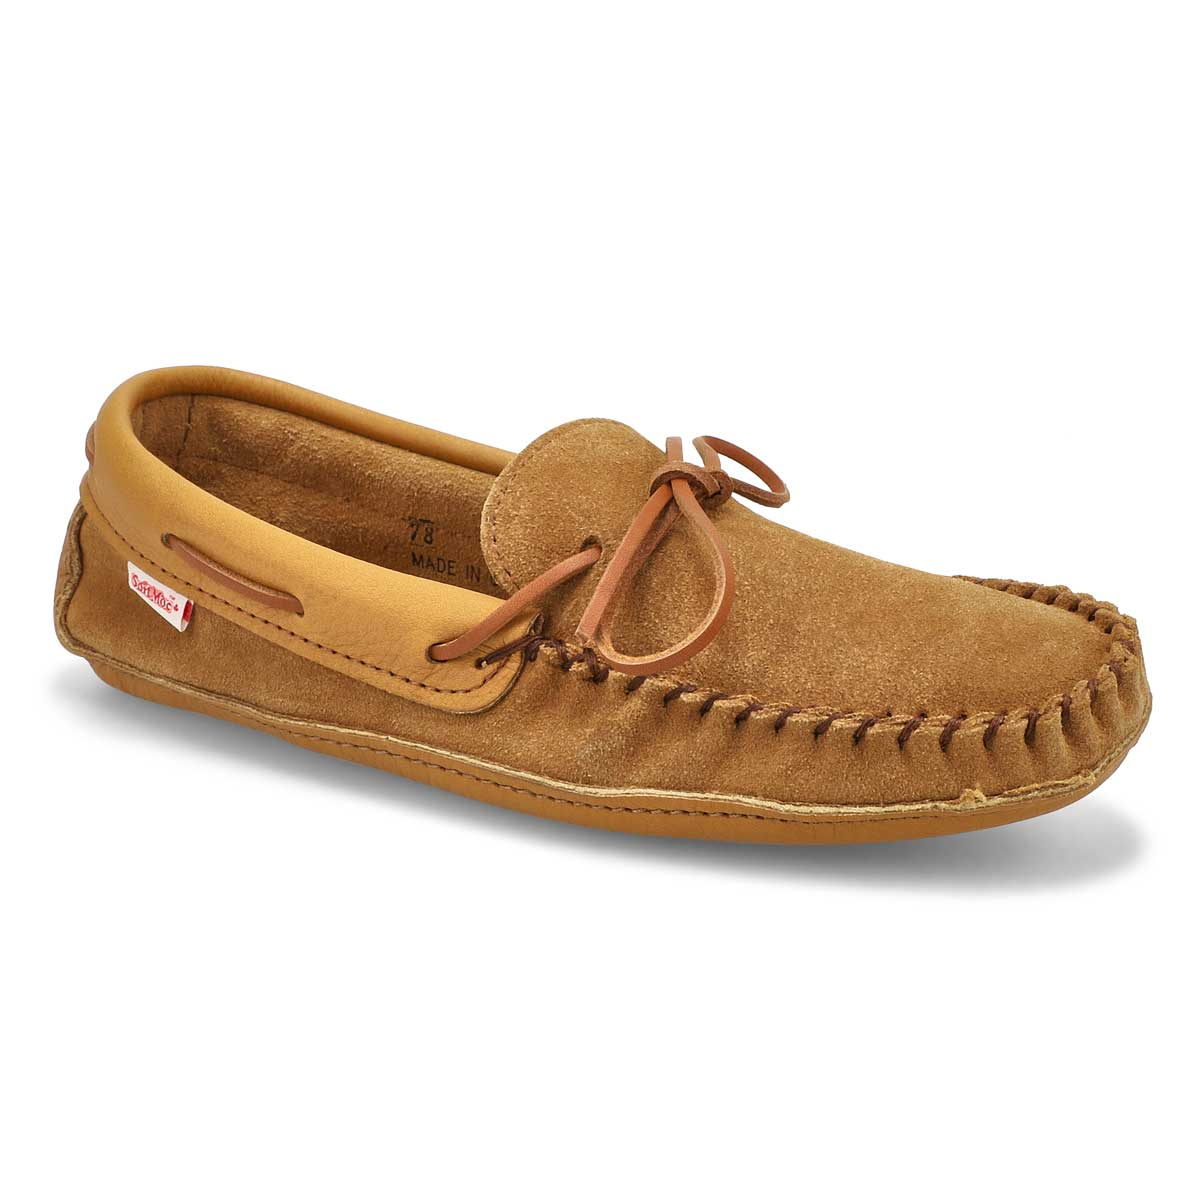 Men's SF78 dark tan memory foam moccasins